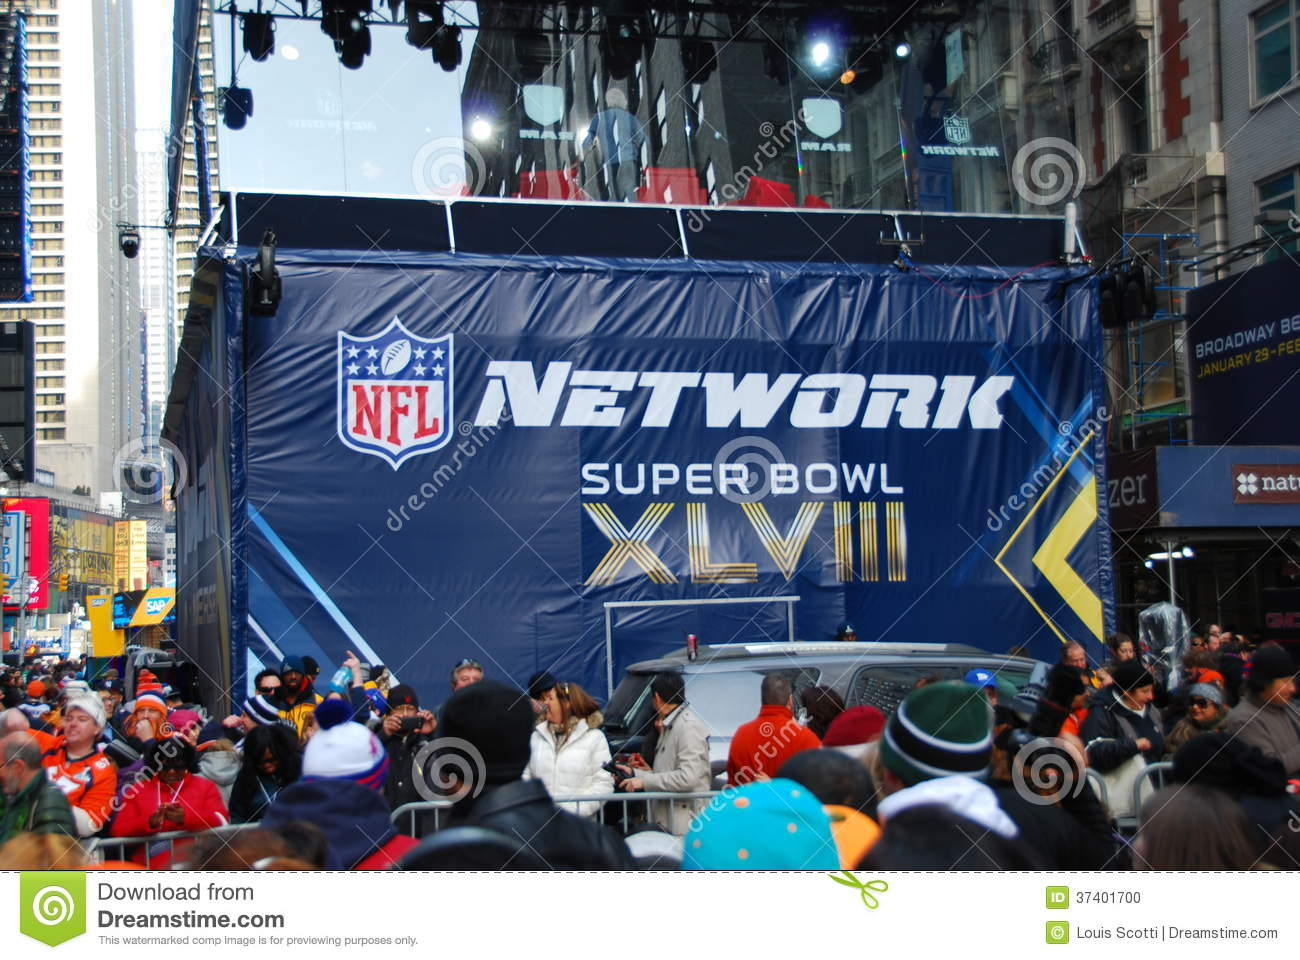 Boulevard de Super Bowl - New York City